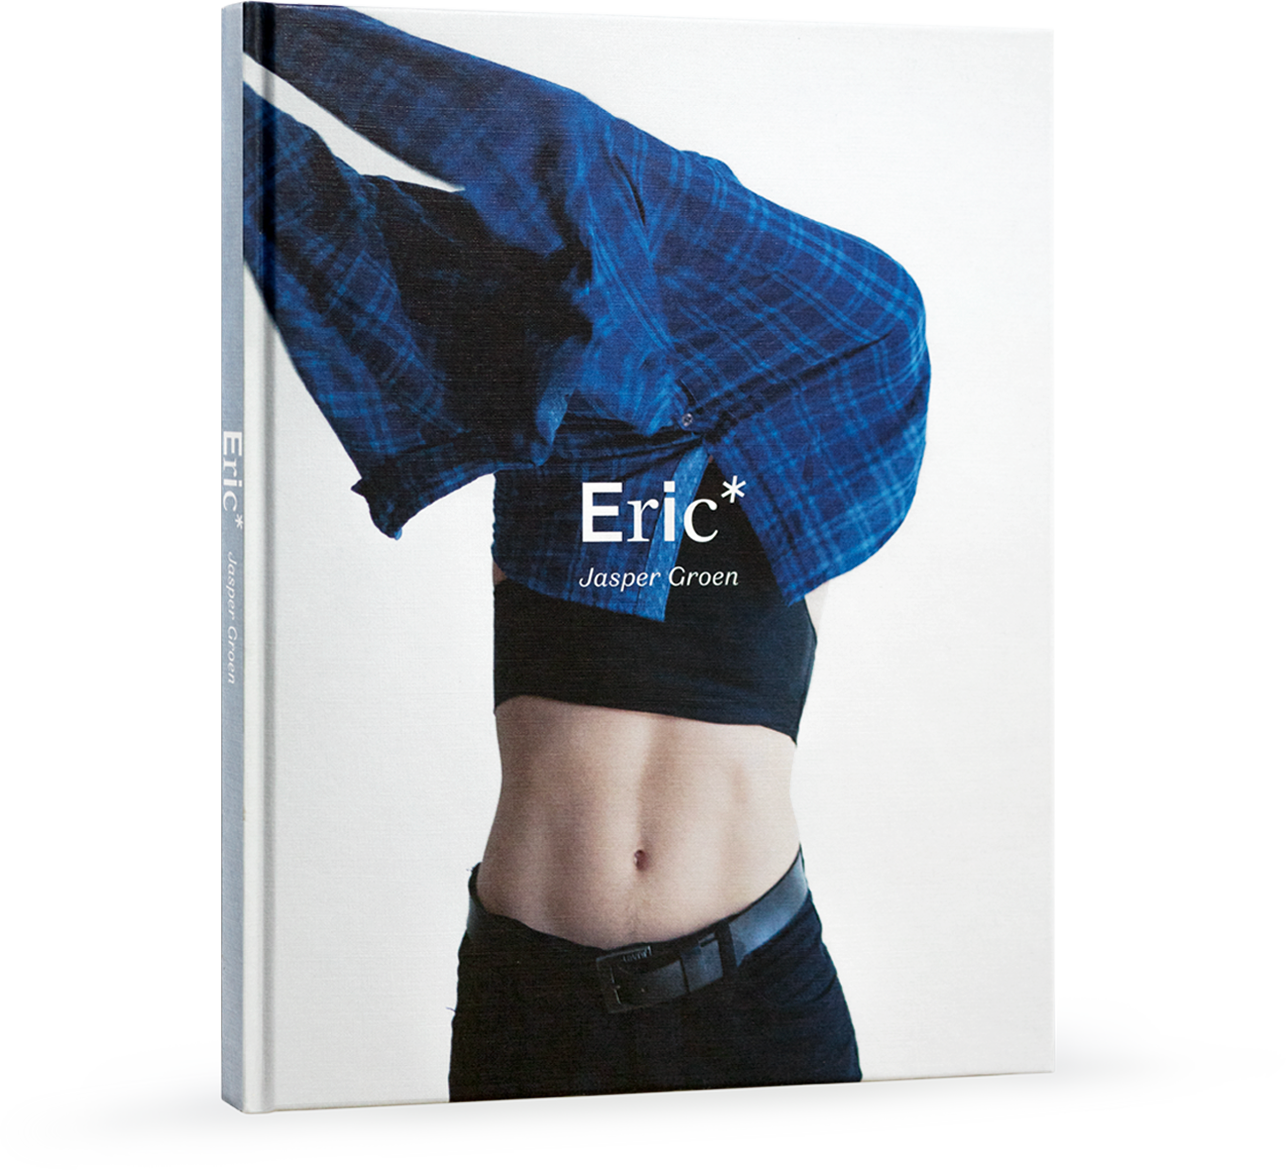 Eric* the book cover by photographerJasper Groen